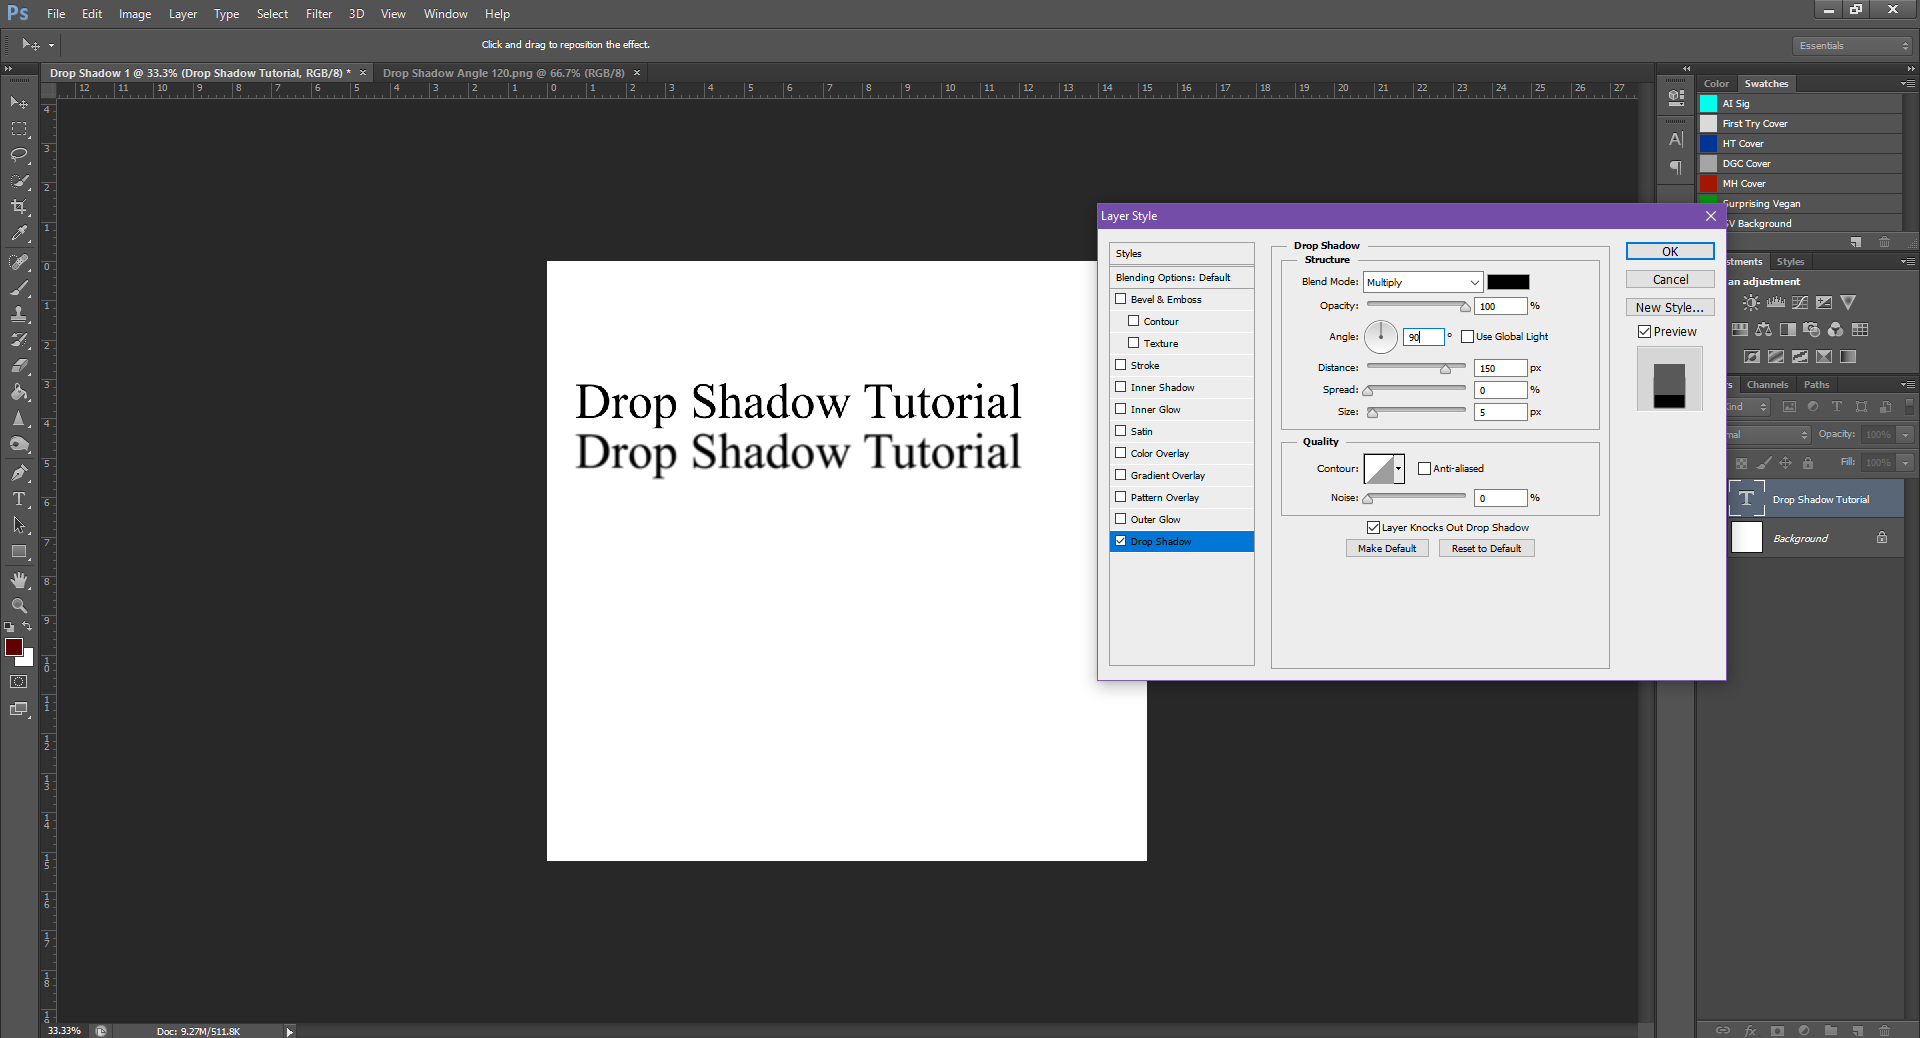 AterImber.com - Writing - Writing Tips - PHSH Tutorial - Drop Shadow - Angle 90